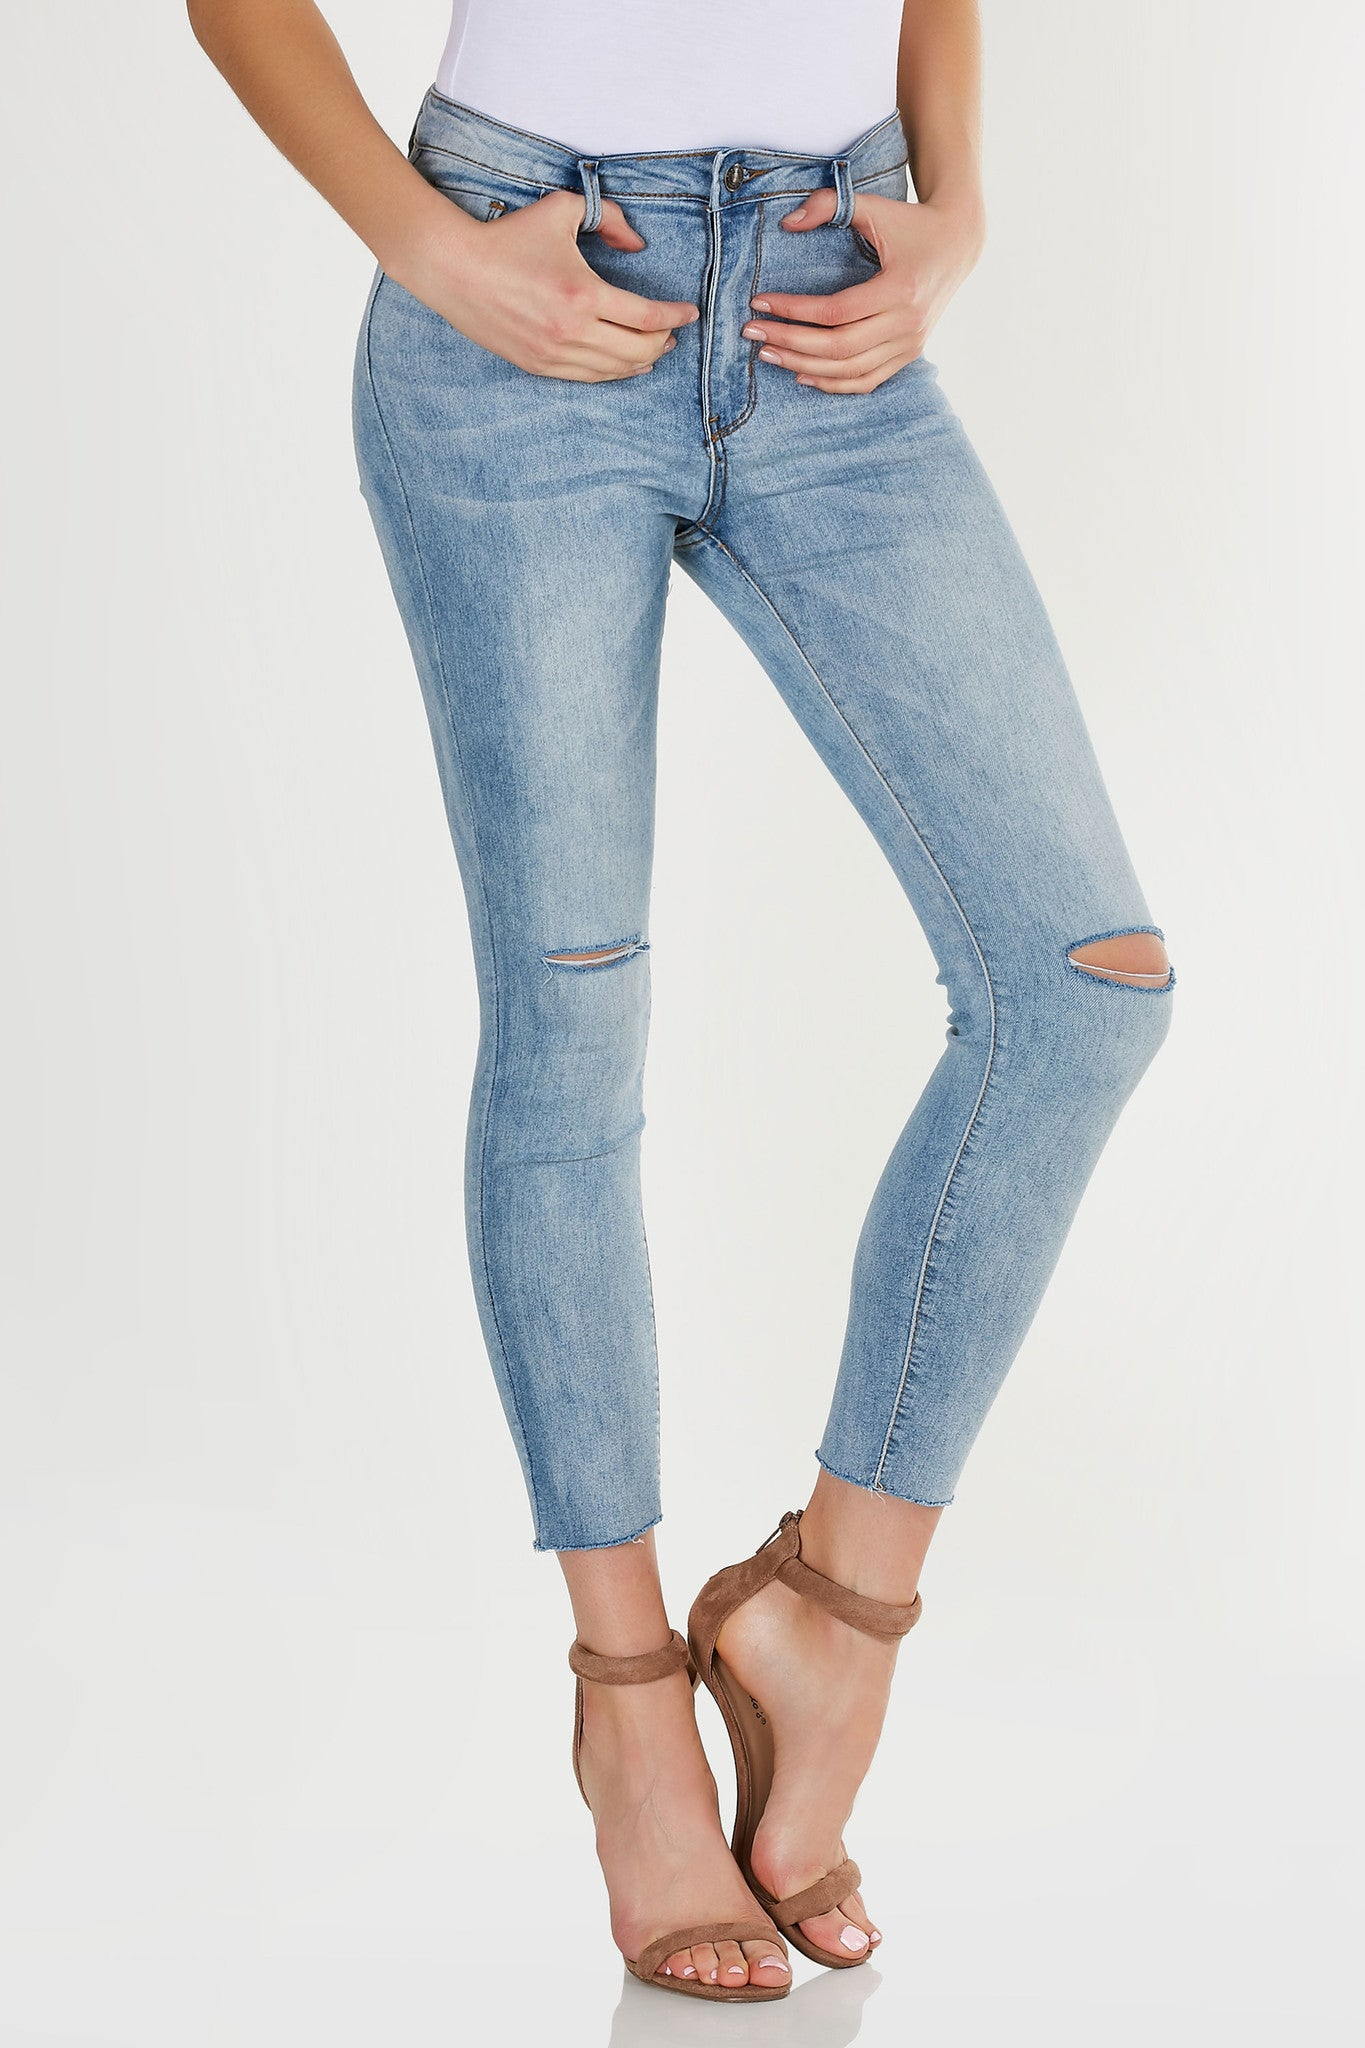 High waist raw hem five pocket skinny jeans with knee slits and button zipper closure at front.